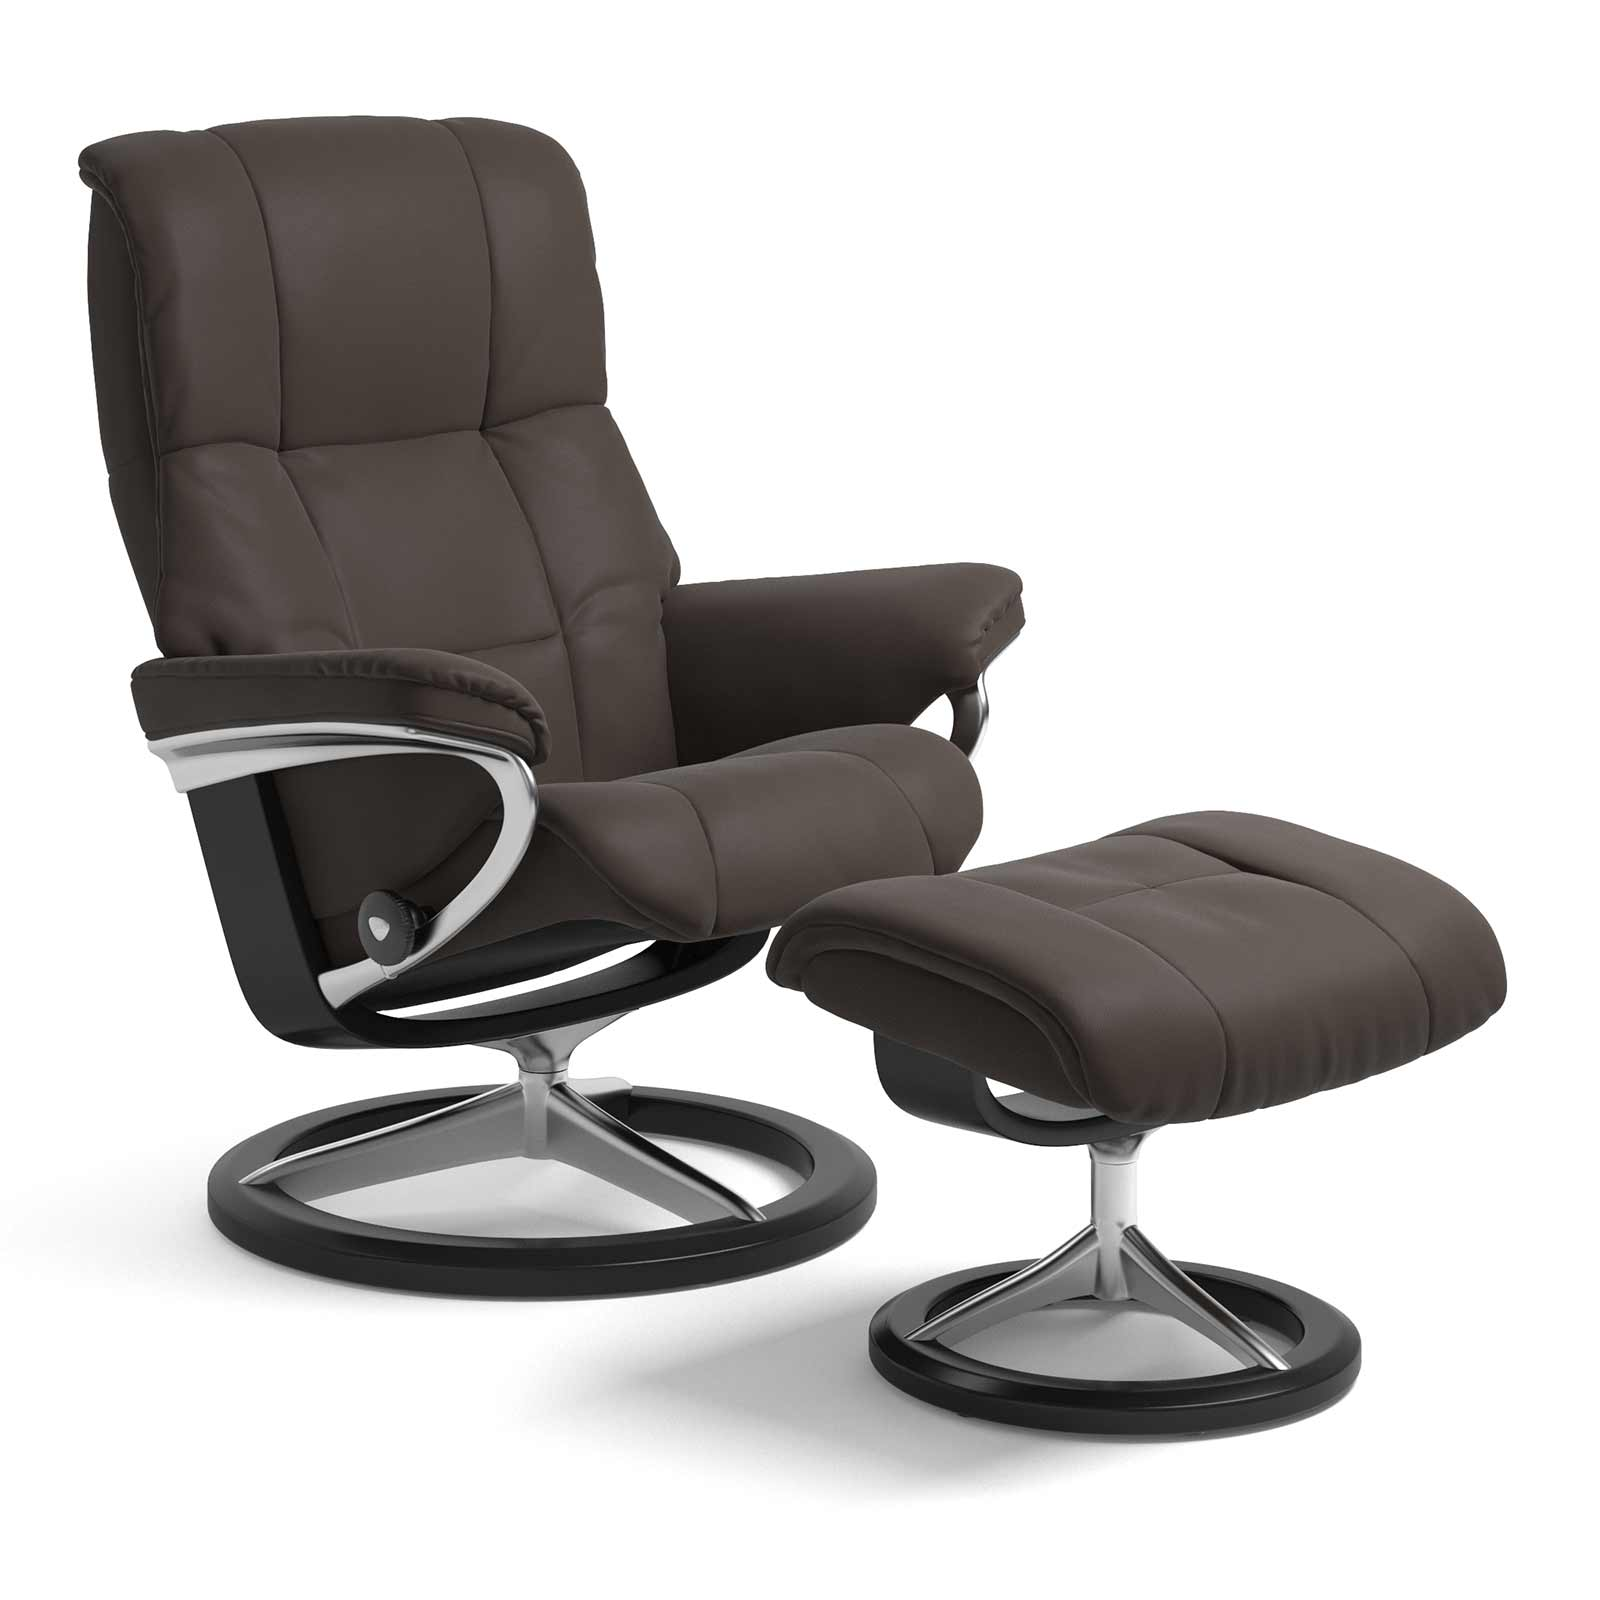 Stressless Wing Signature Sessel Stressless Sessel Mayfair Signature Paloma Chestnut Mit Hocker